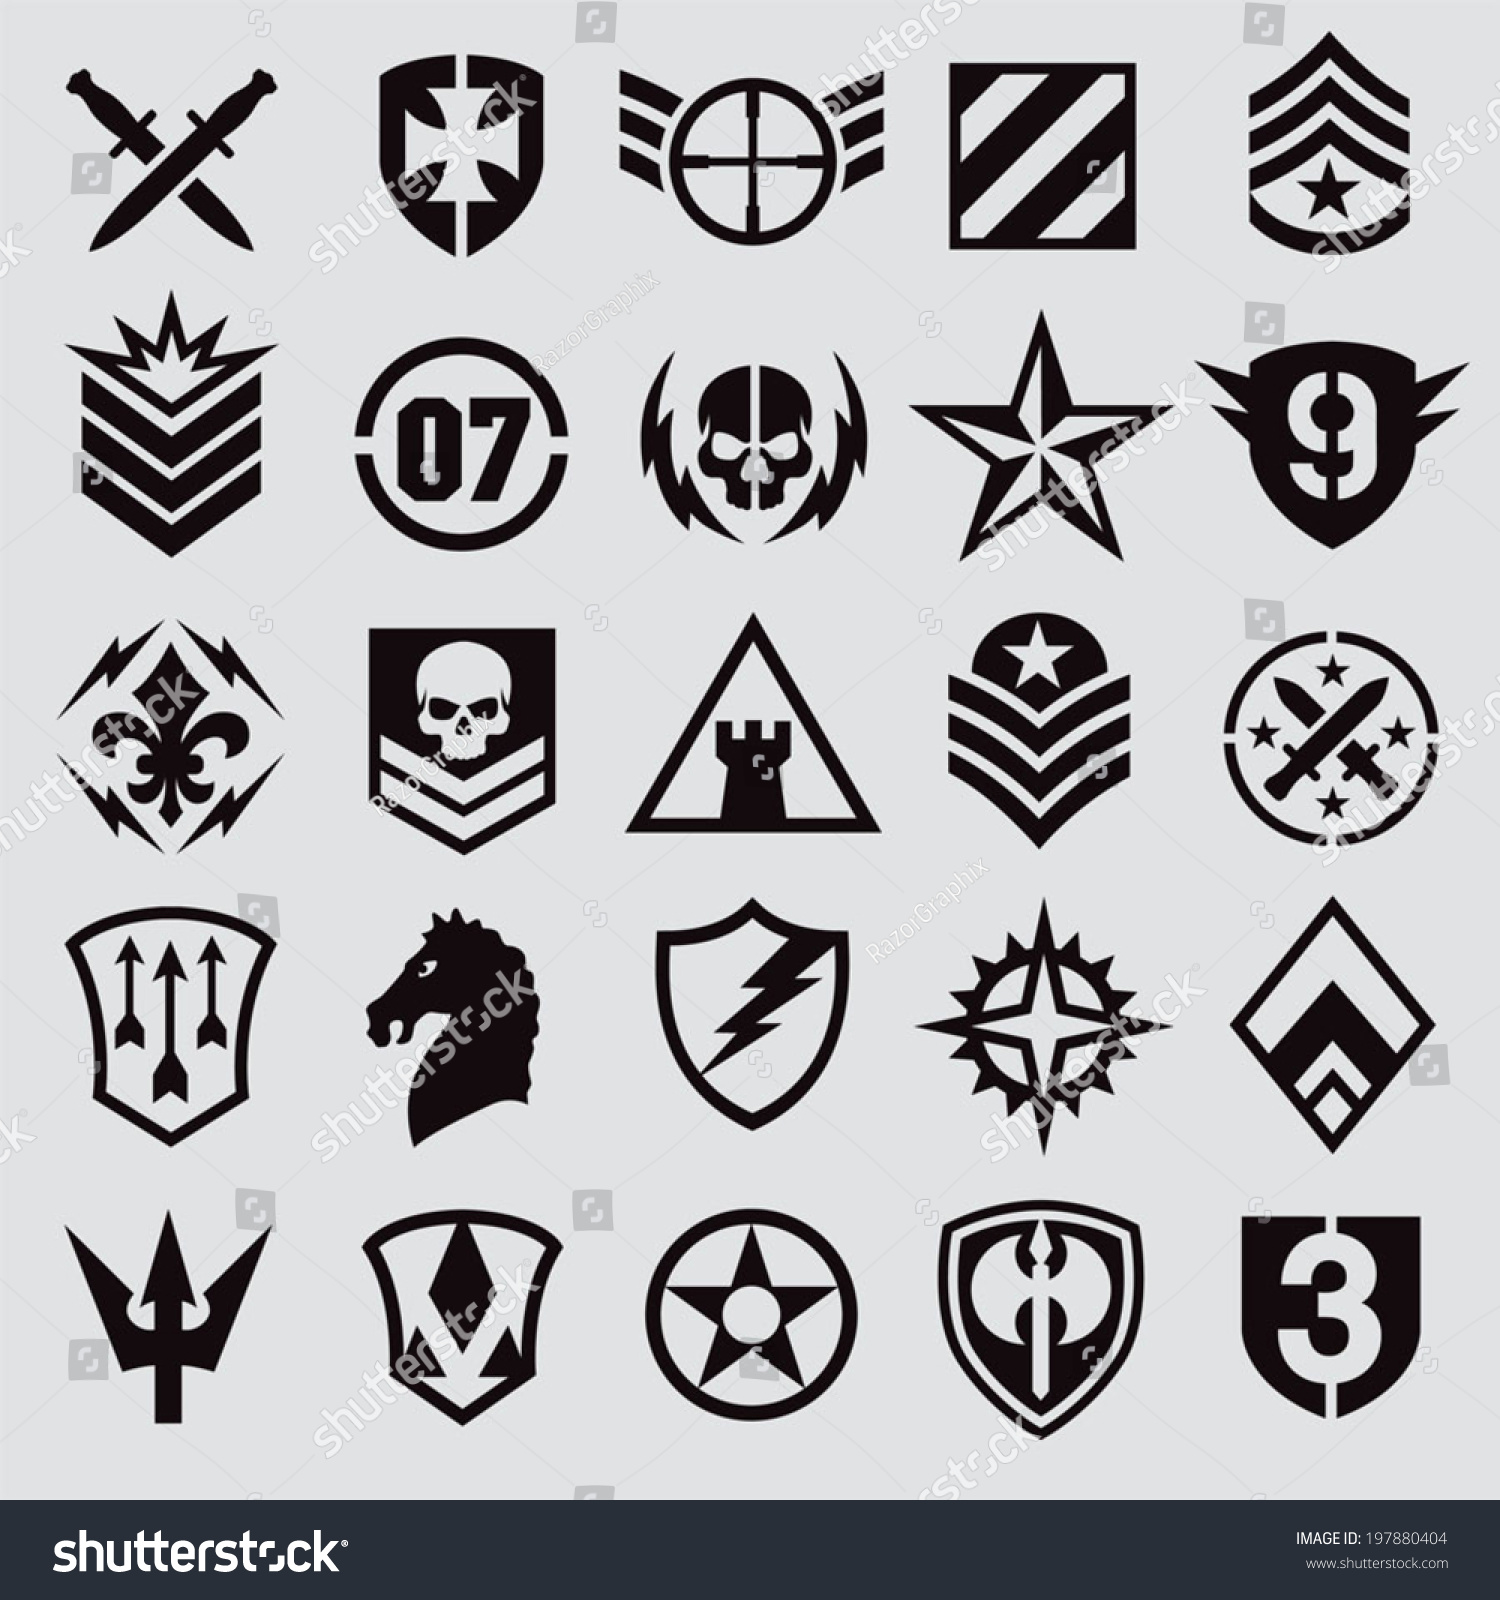 Military symbol icons stock vector 197880404 shutterstock military symbol icons buycottarizona